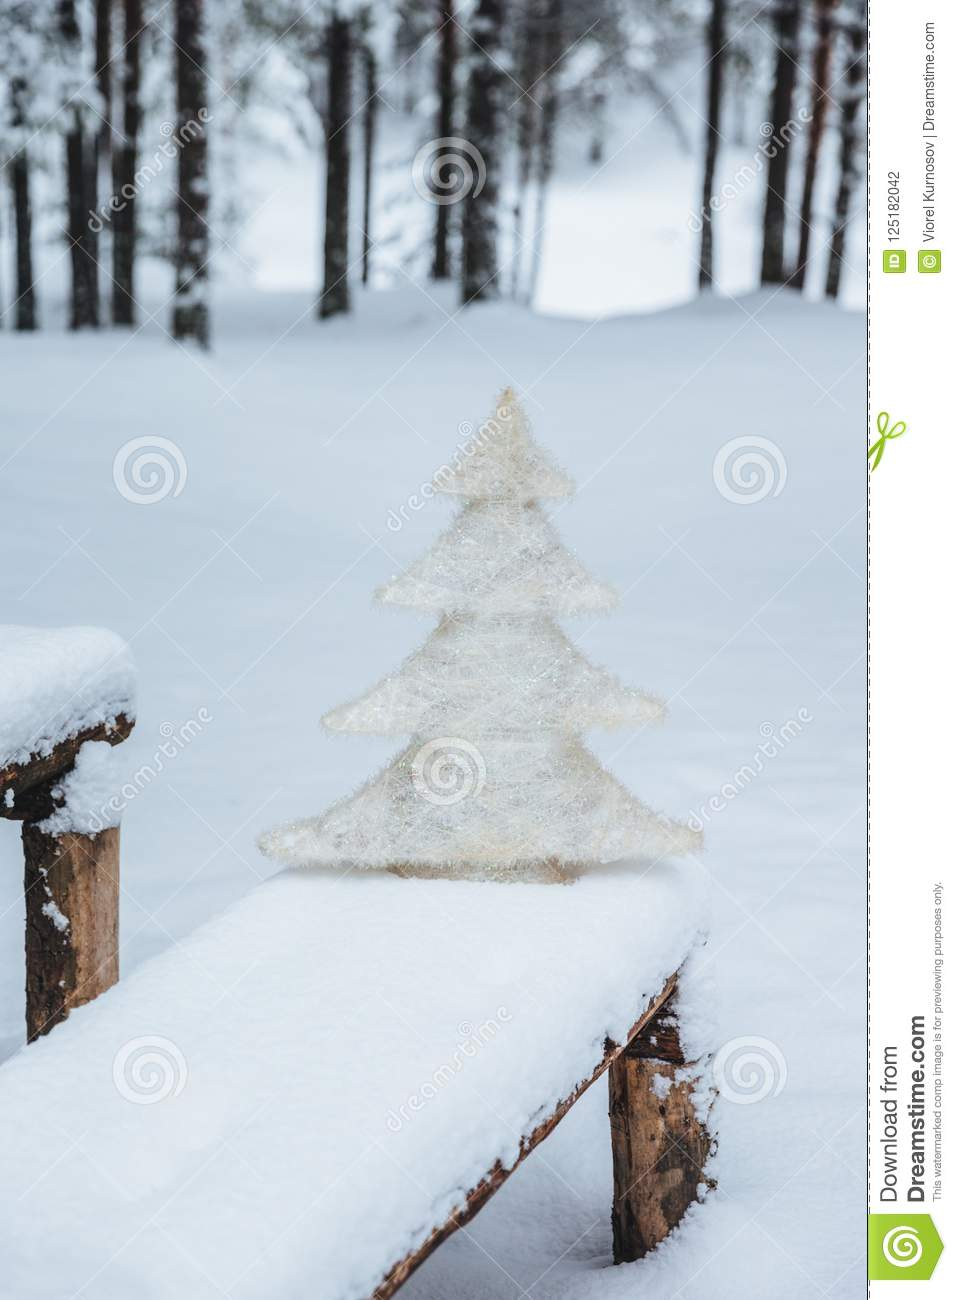 Vertical shot of white artificial fir tree on bench covered with snow, in winter frosty forest. Holidays decoration. Season concep